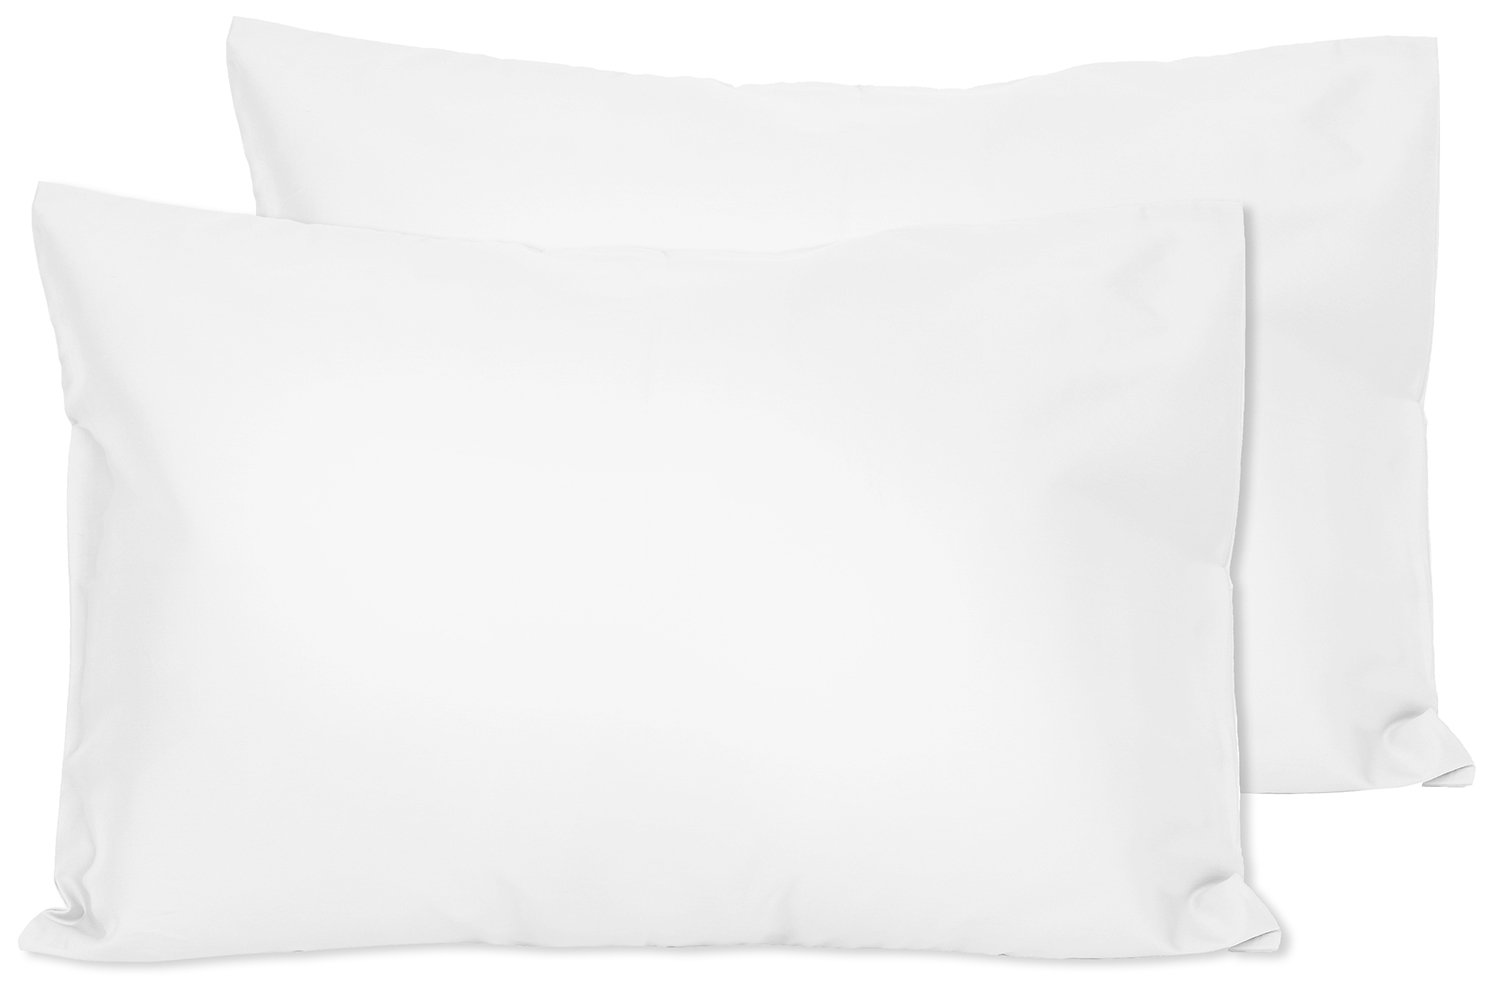 2 Ivory White Toddler Pillowcases - Envelope Style - For Pillows Sized 13x18 and 14x19 - 100% Cotton With Sateen Weave - Machine Washable - 2 Pack Zadisonjaxx Pillow ZJTPC-2iWS2P-111617